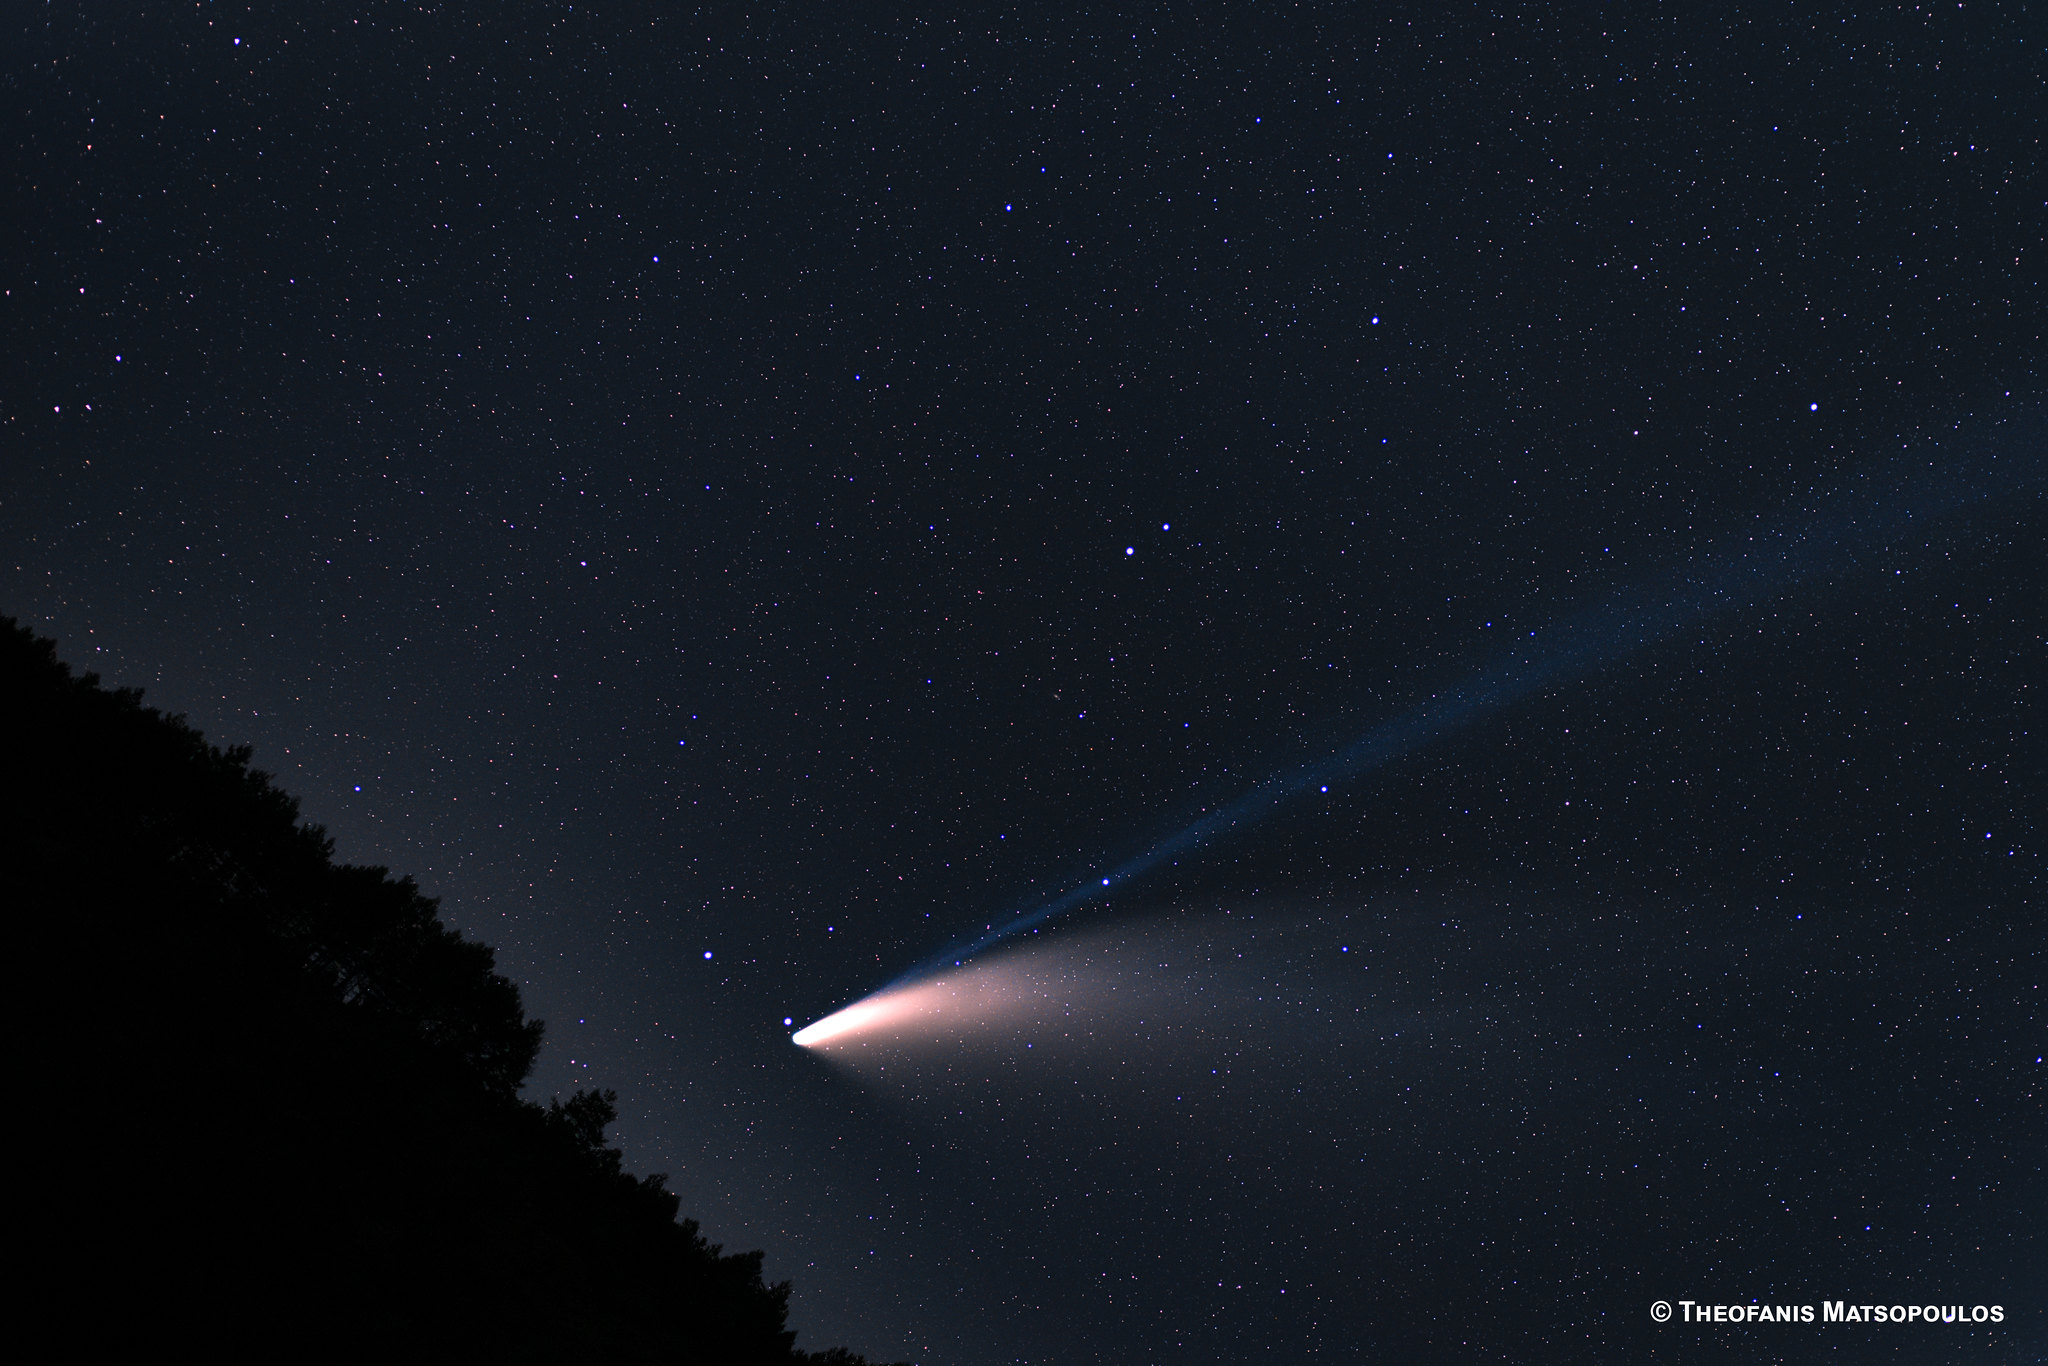 Comet NEOWISE Matsopoulos